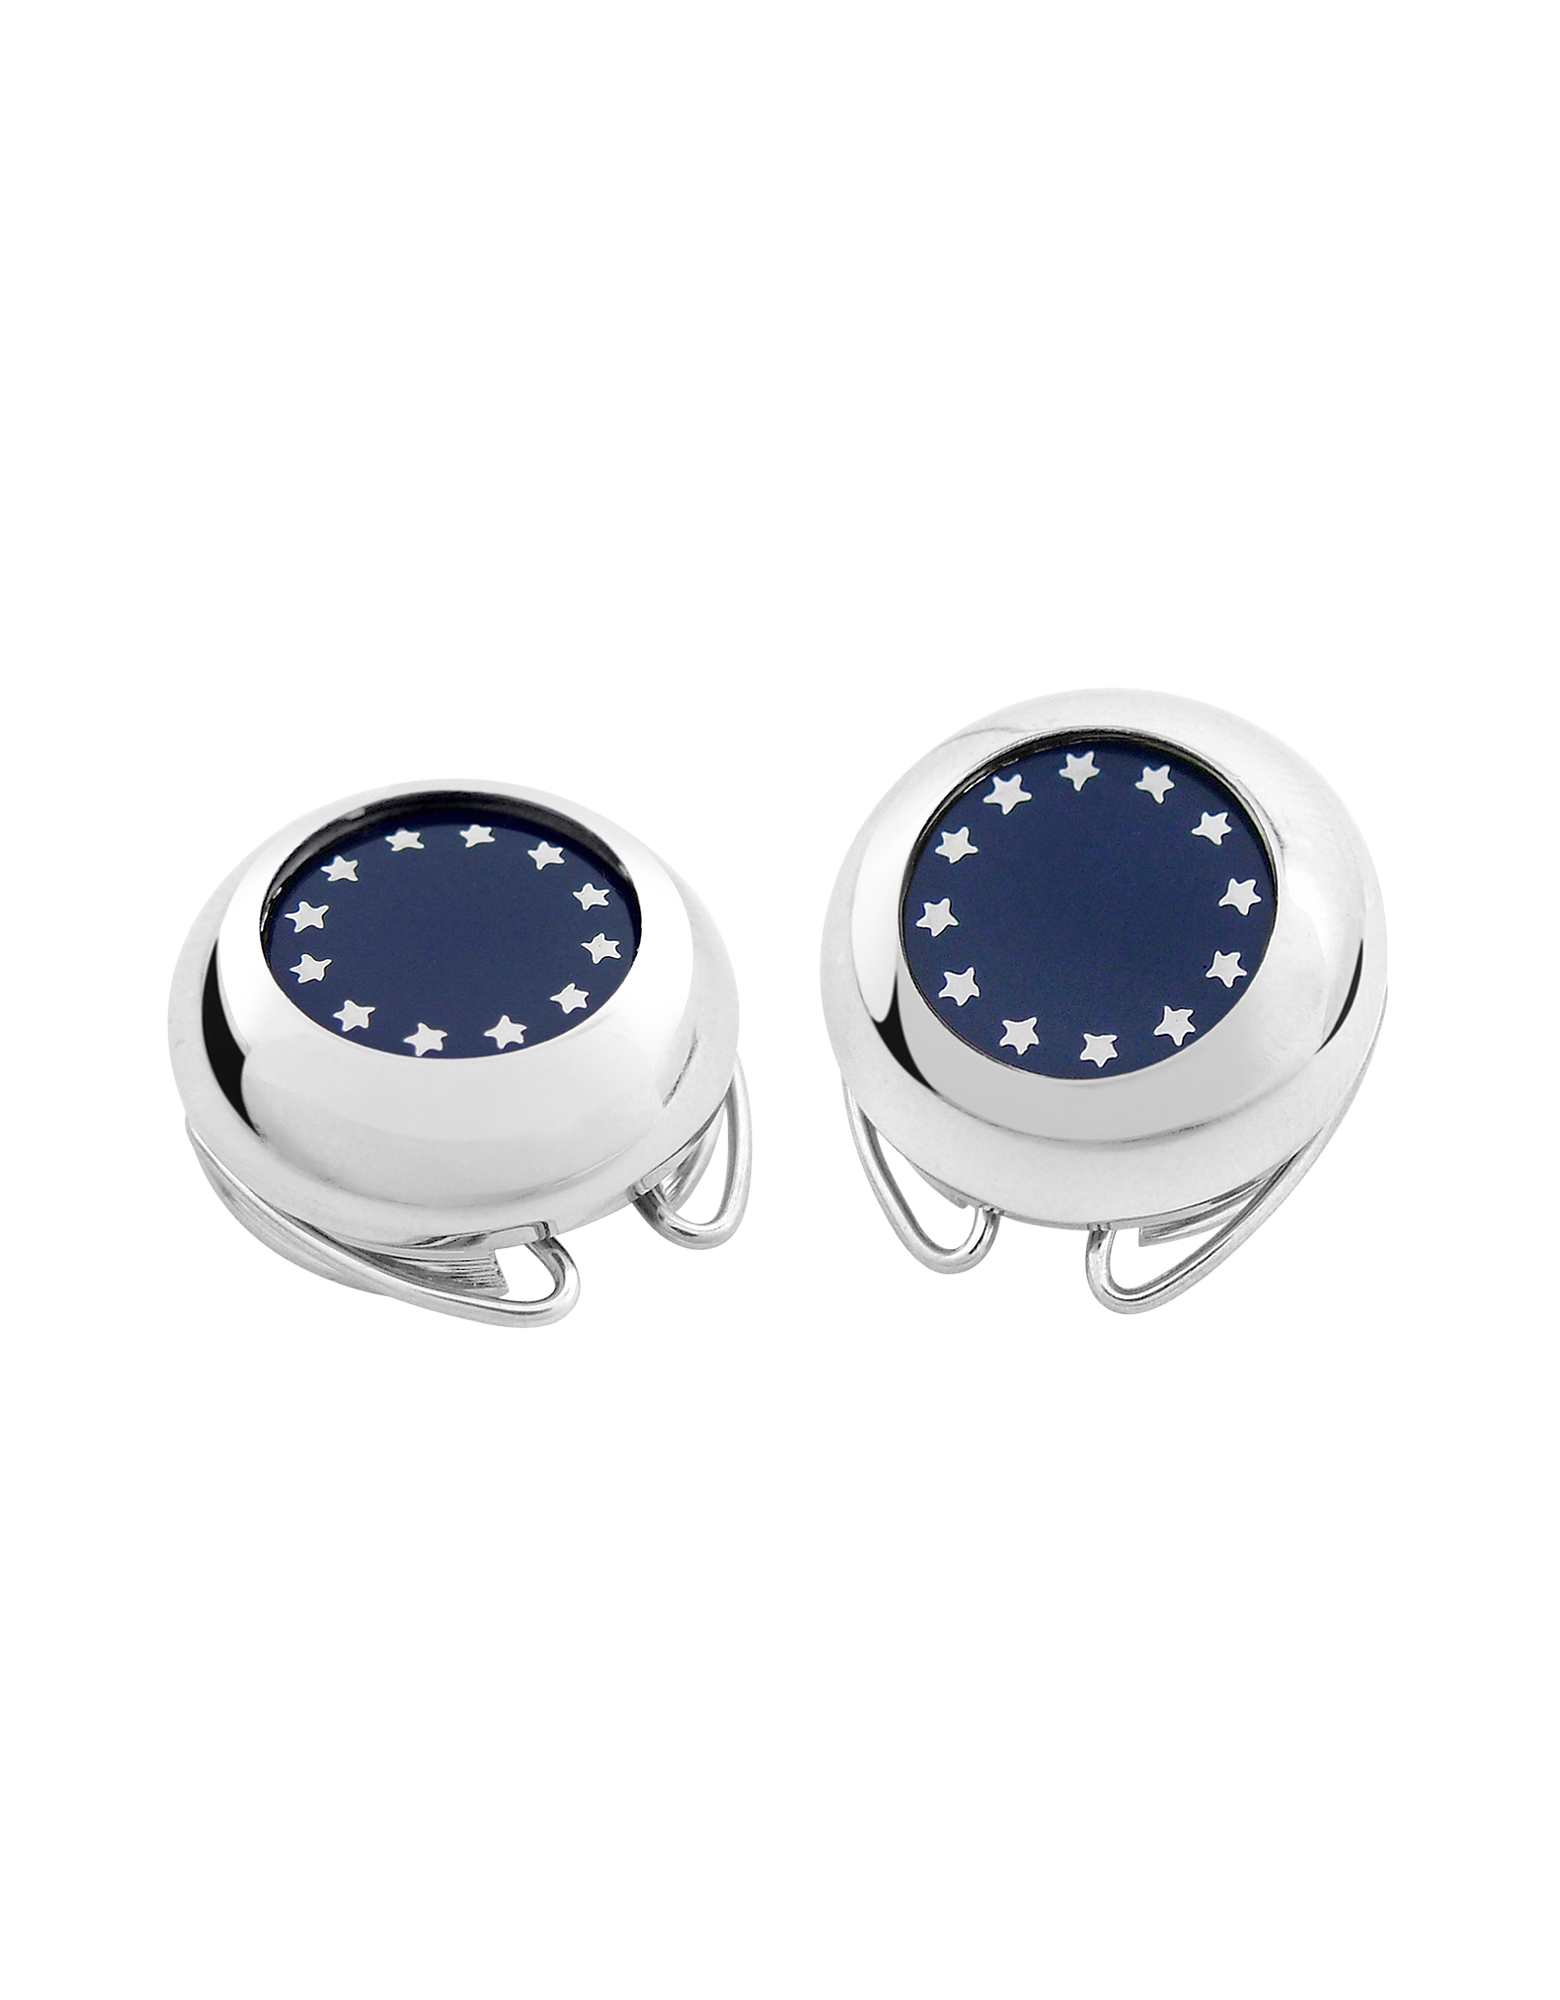 Image of Silver Plated European Flag Button Covers